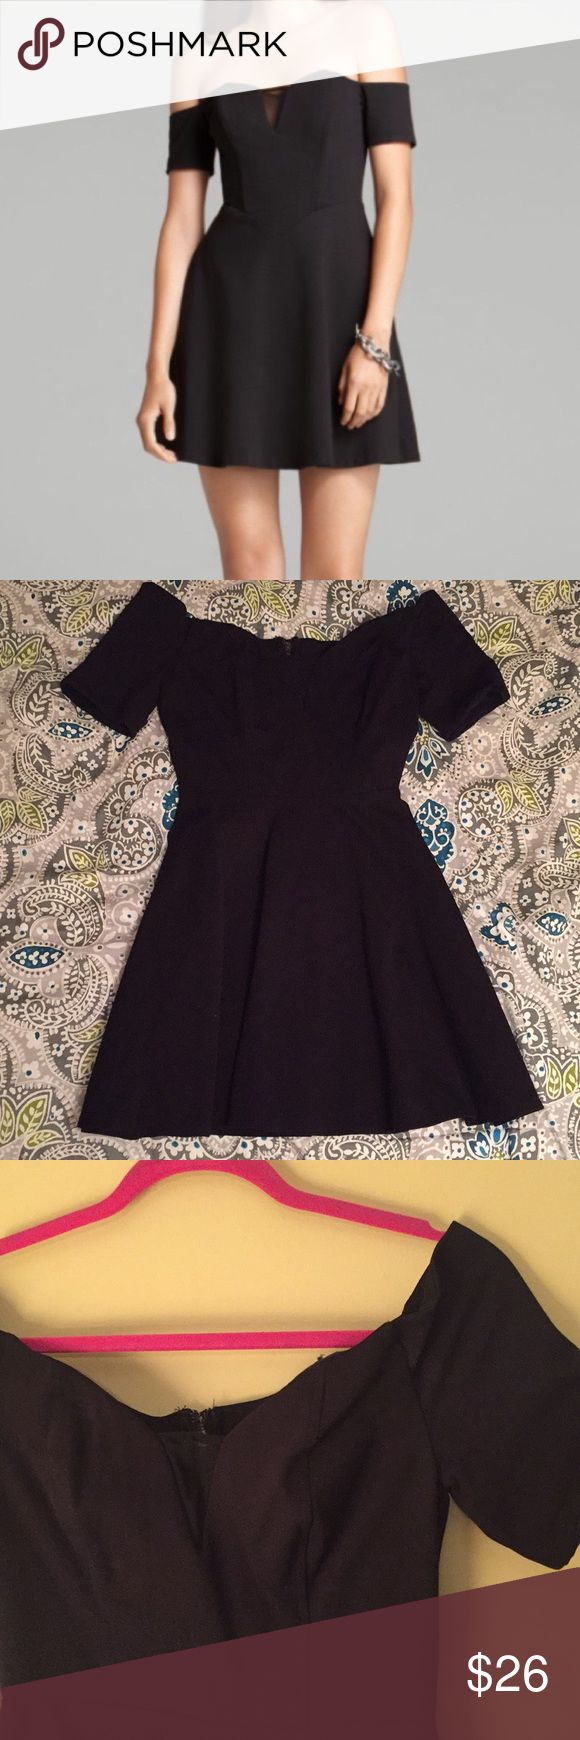 Guess brand little black dress Guess brand off the shoulder dress. Mesh in the front and back. Sweetheart neckline. Size 6. Guess Dresses Mini